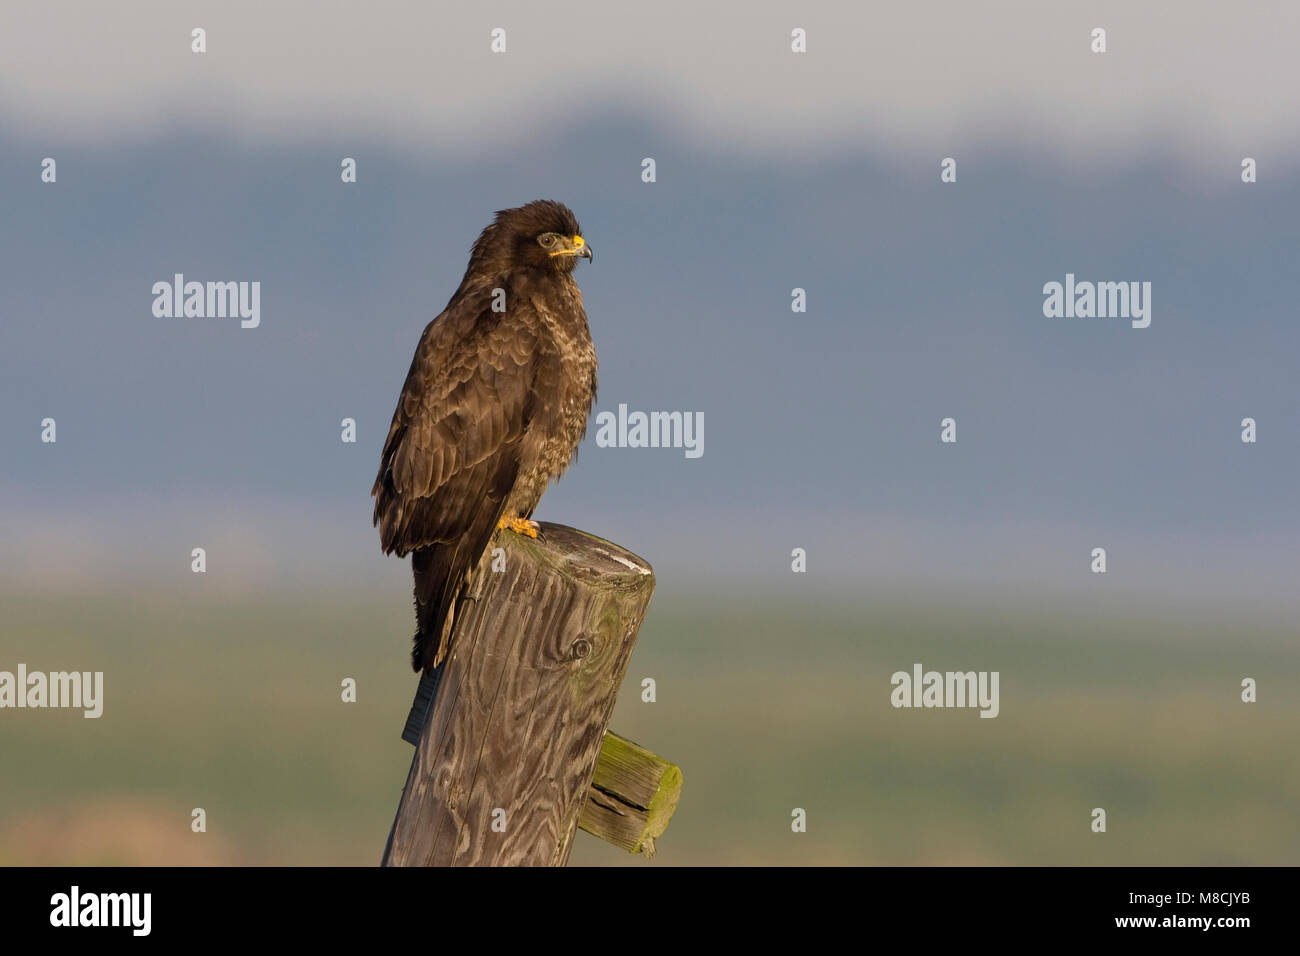 Buizerd op de uitkijk; Common Buzzard on a stake-out - Stock Image